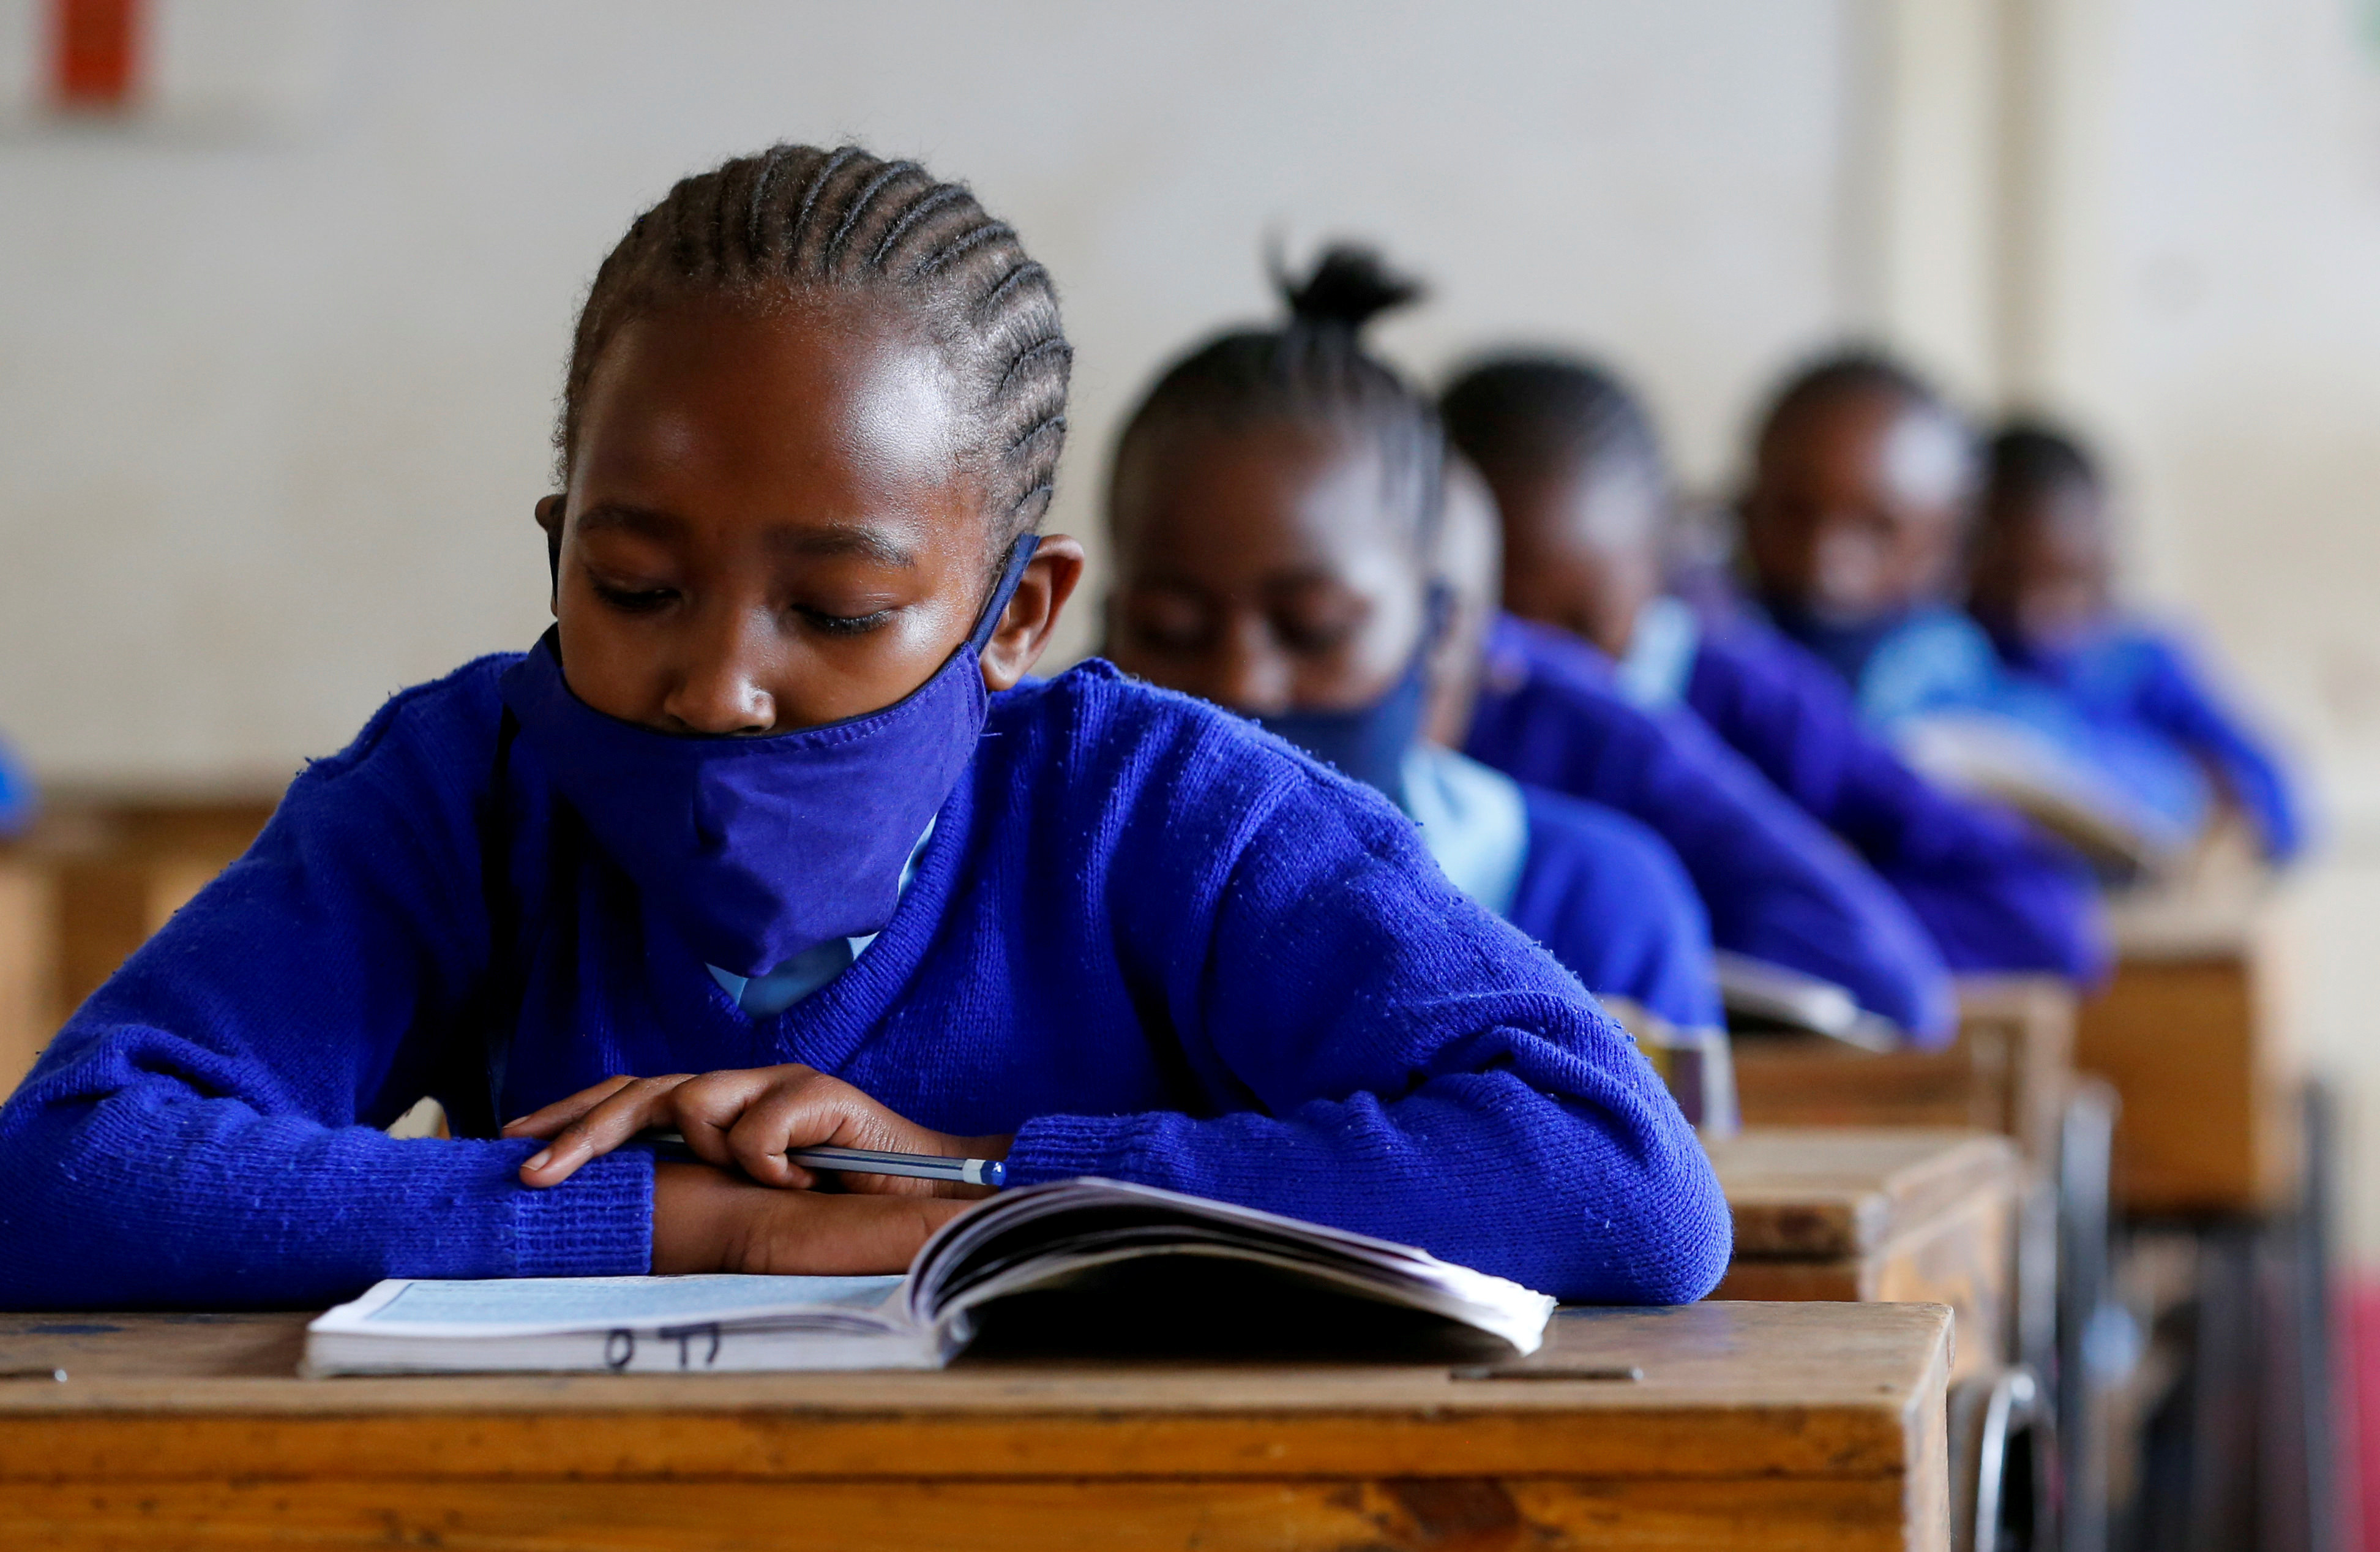 A schoolgirl wears a face mask as she reads a book inside a classroom at the Olympic Primary School during the partial reopening of schools, after the government scrapped plans to cancel the academic year due to the coronavirus disease (COVID-19) pandemic, in Kibera slums of Nairobi, Kenya October 12, 2020. REUTERS/Thomas Mukoya - RC2WGJ9PLMPT